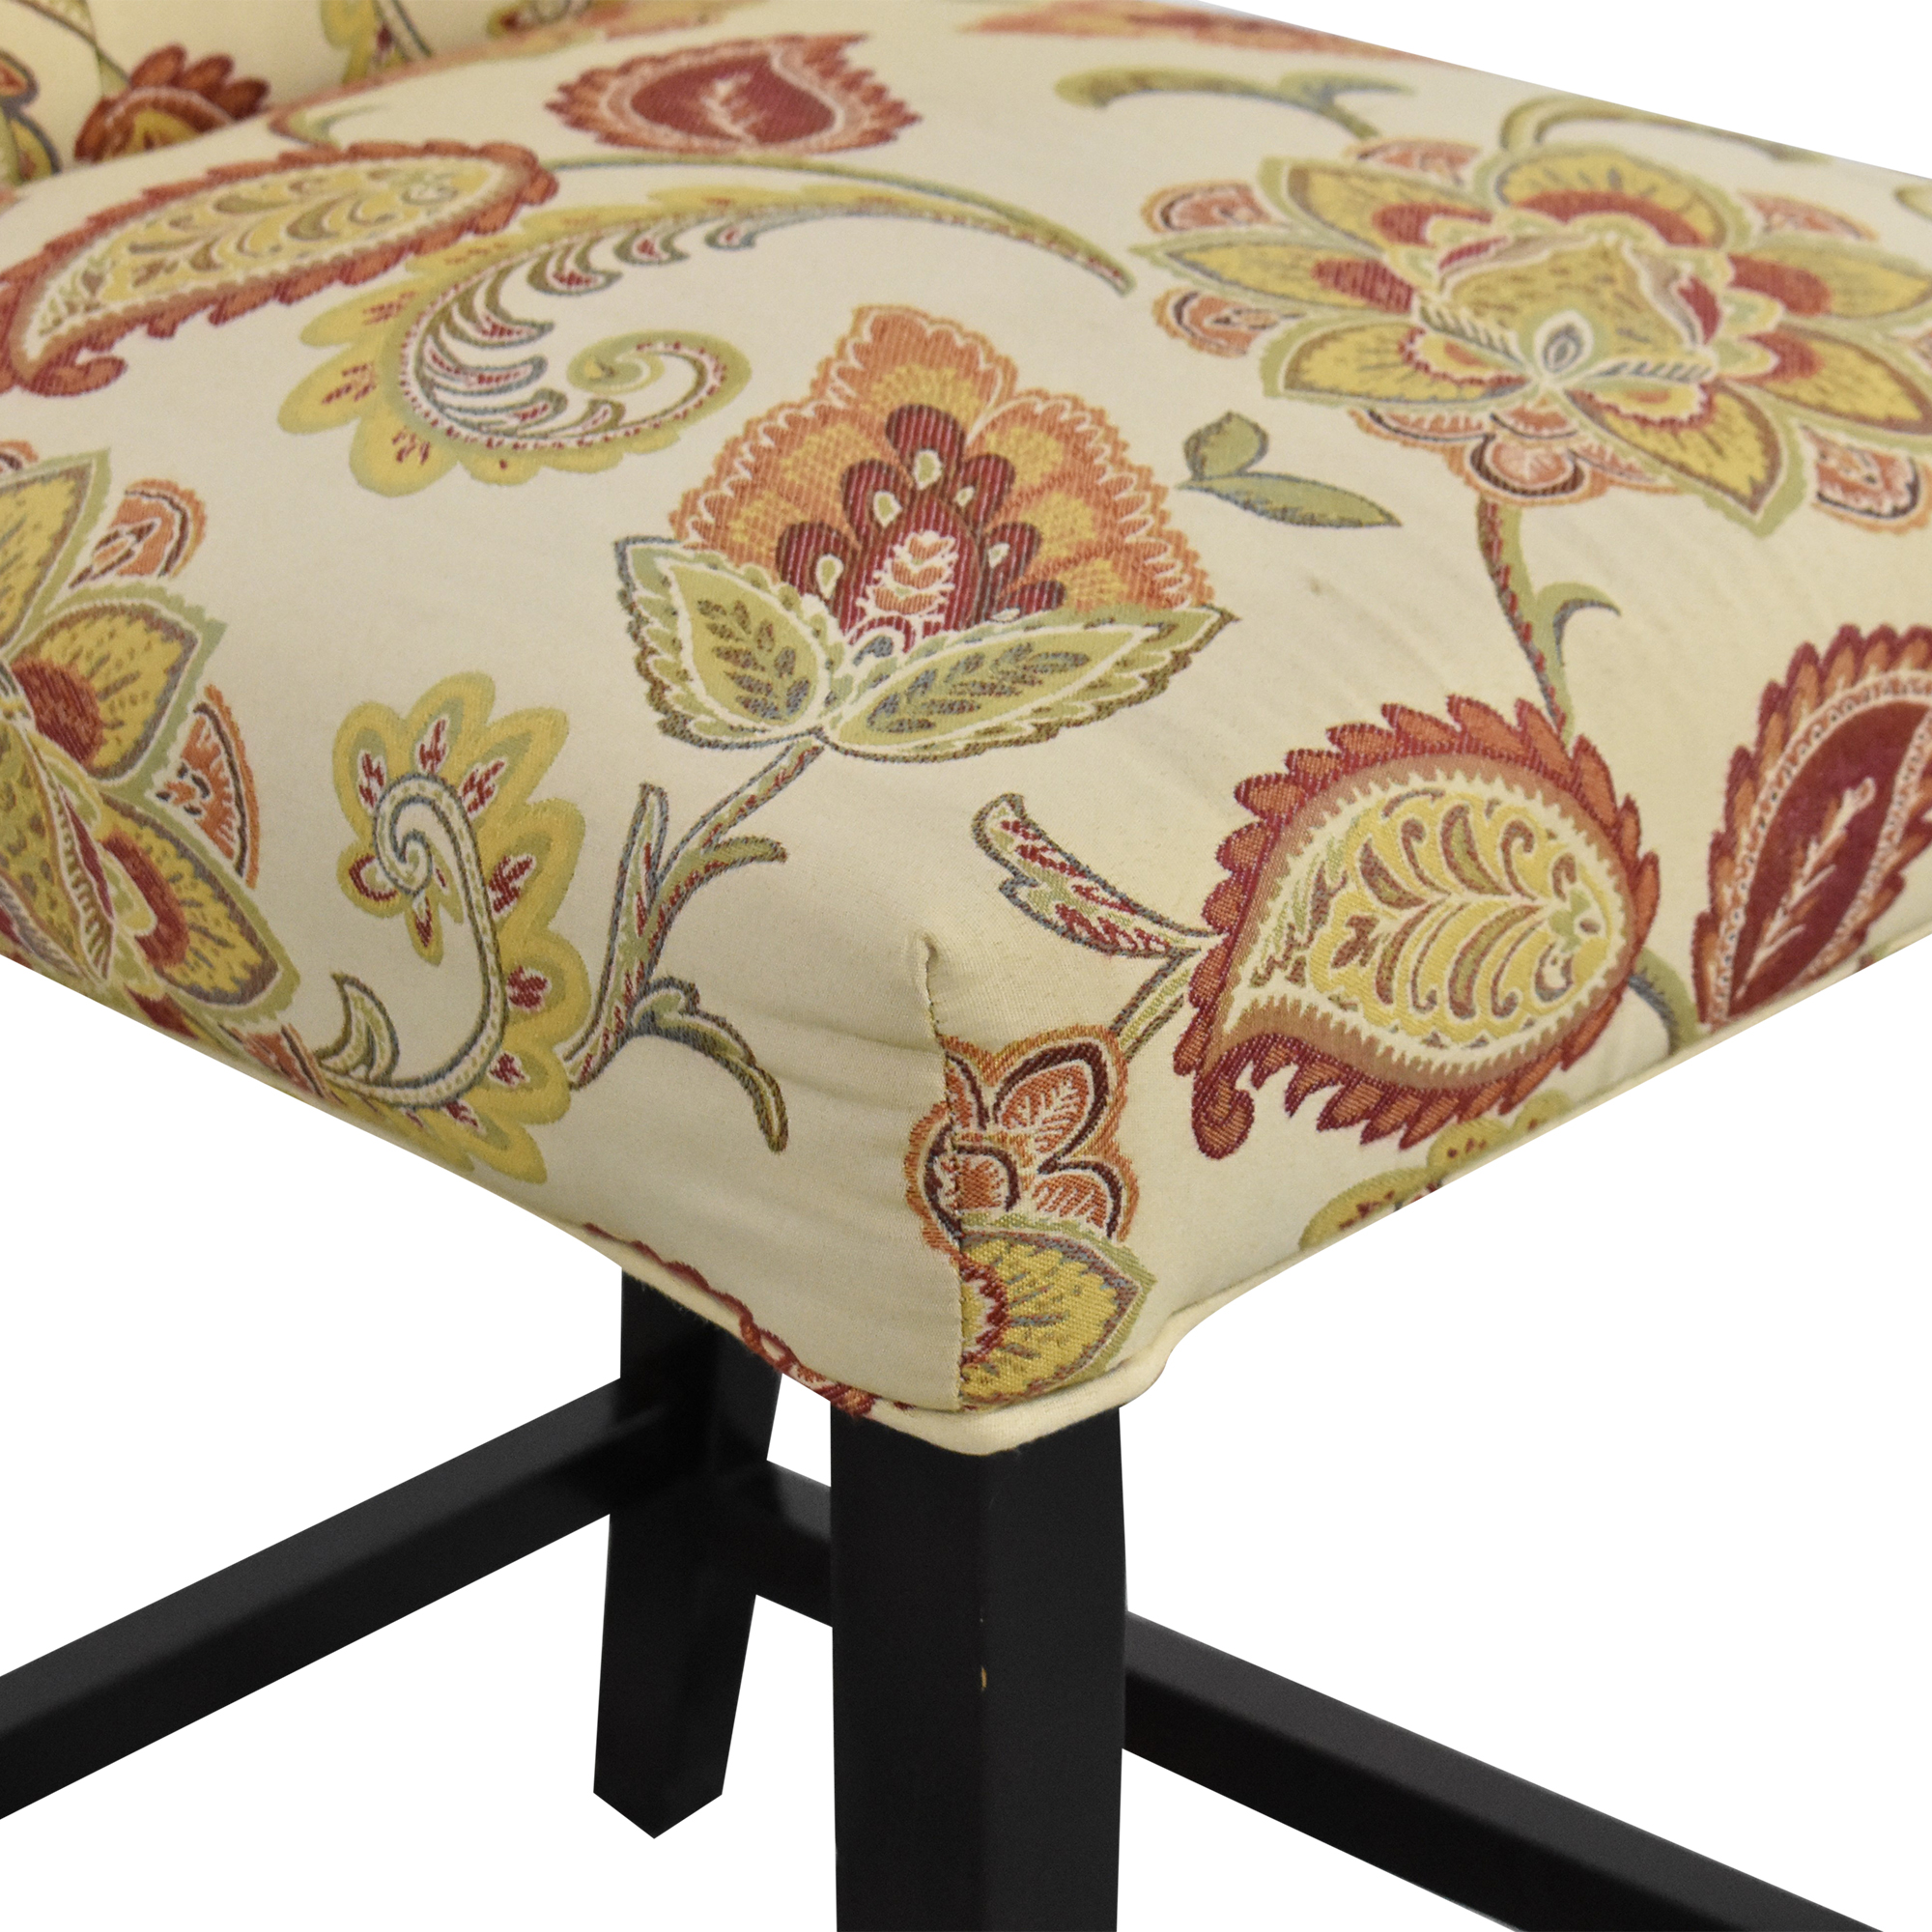 Pier 1 Pier 1 Upholstered Counter Stool on sale